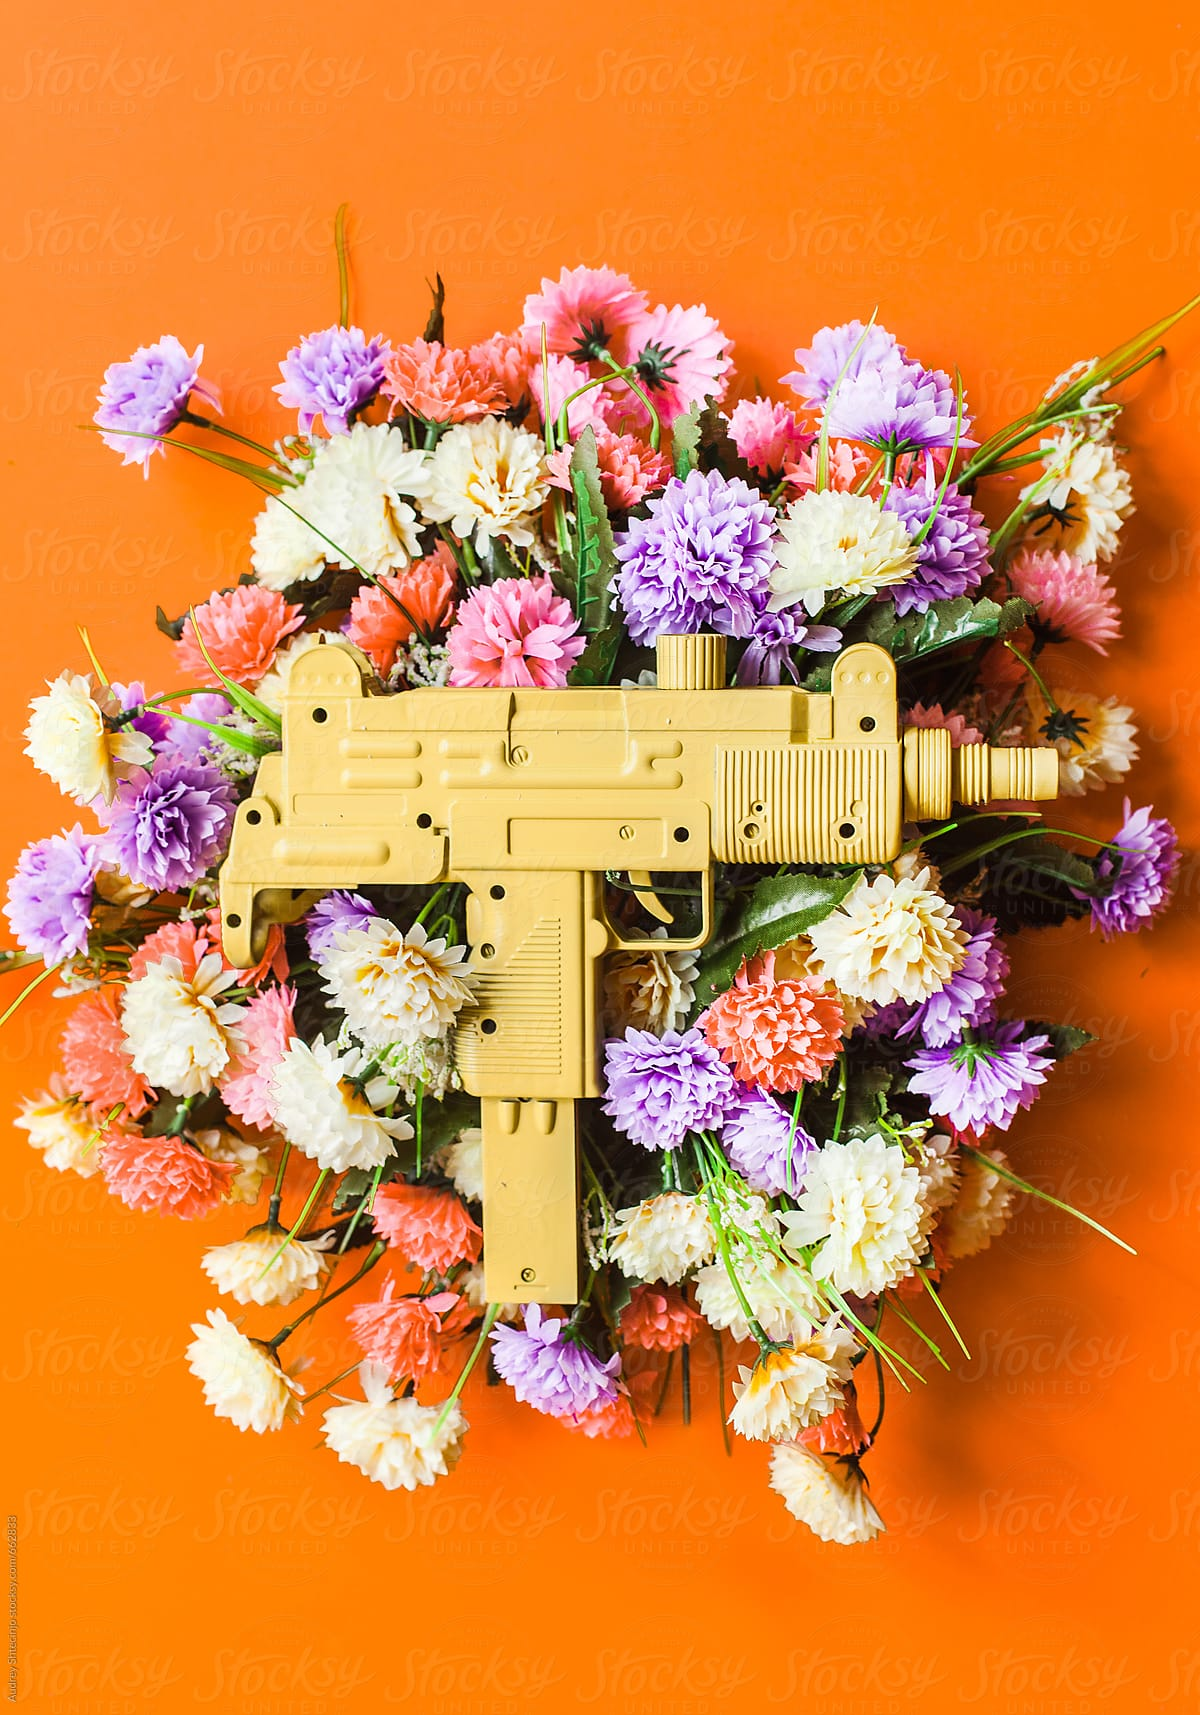 Uzi Machine Gun On Colorful Flower Bouquet. | Stocksy United